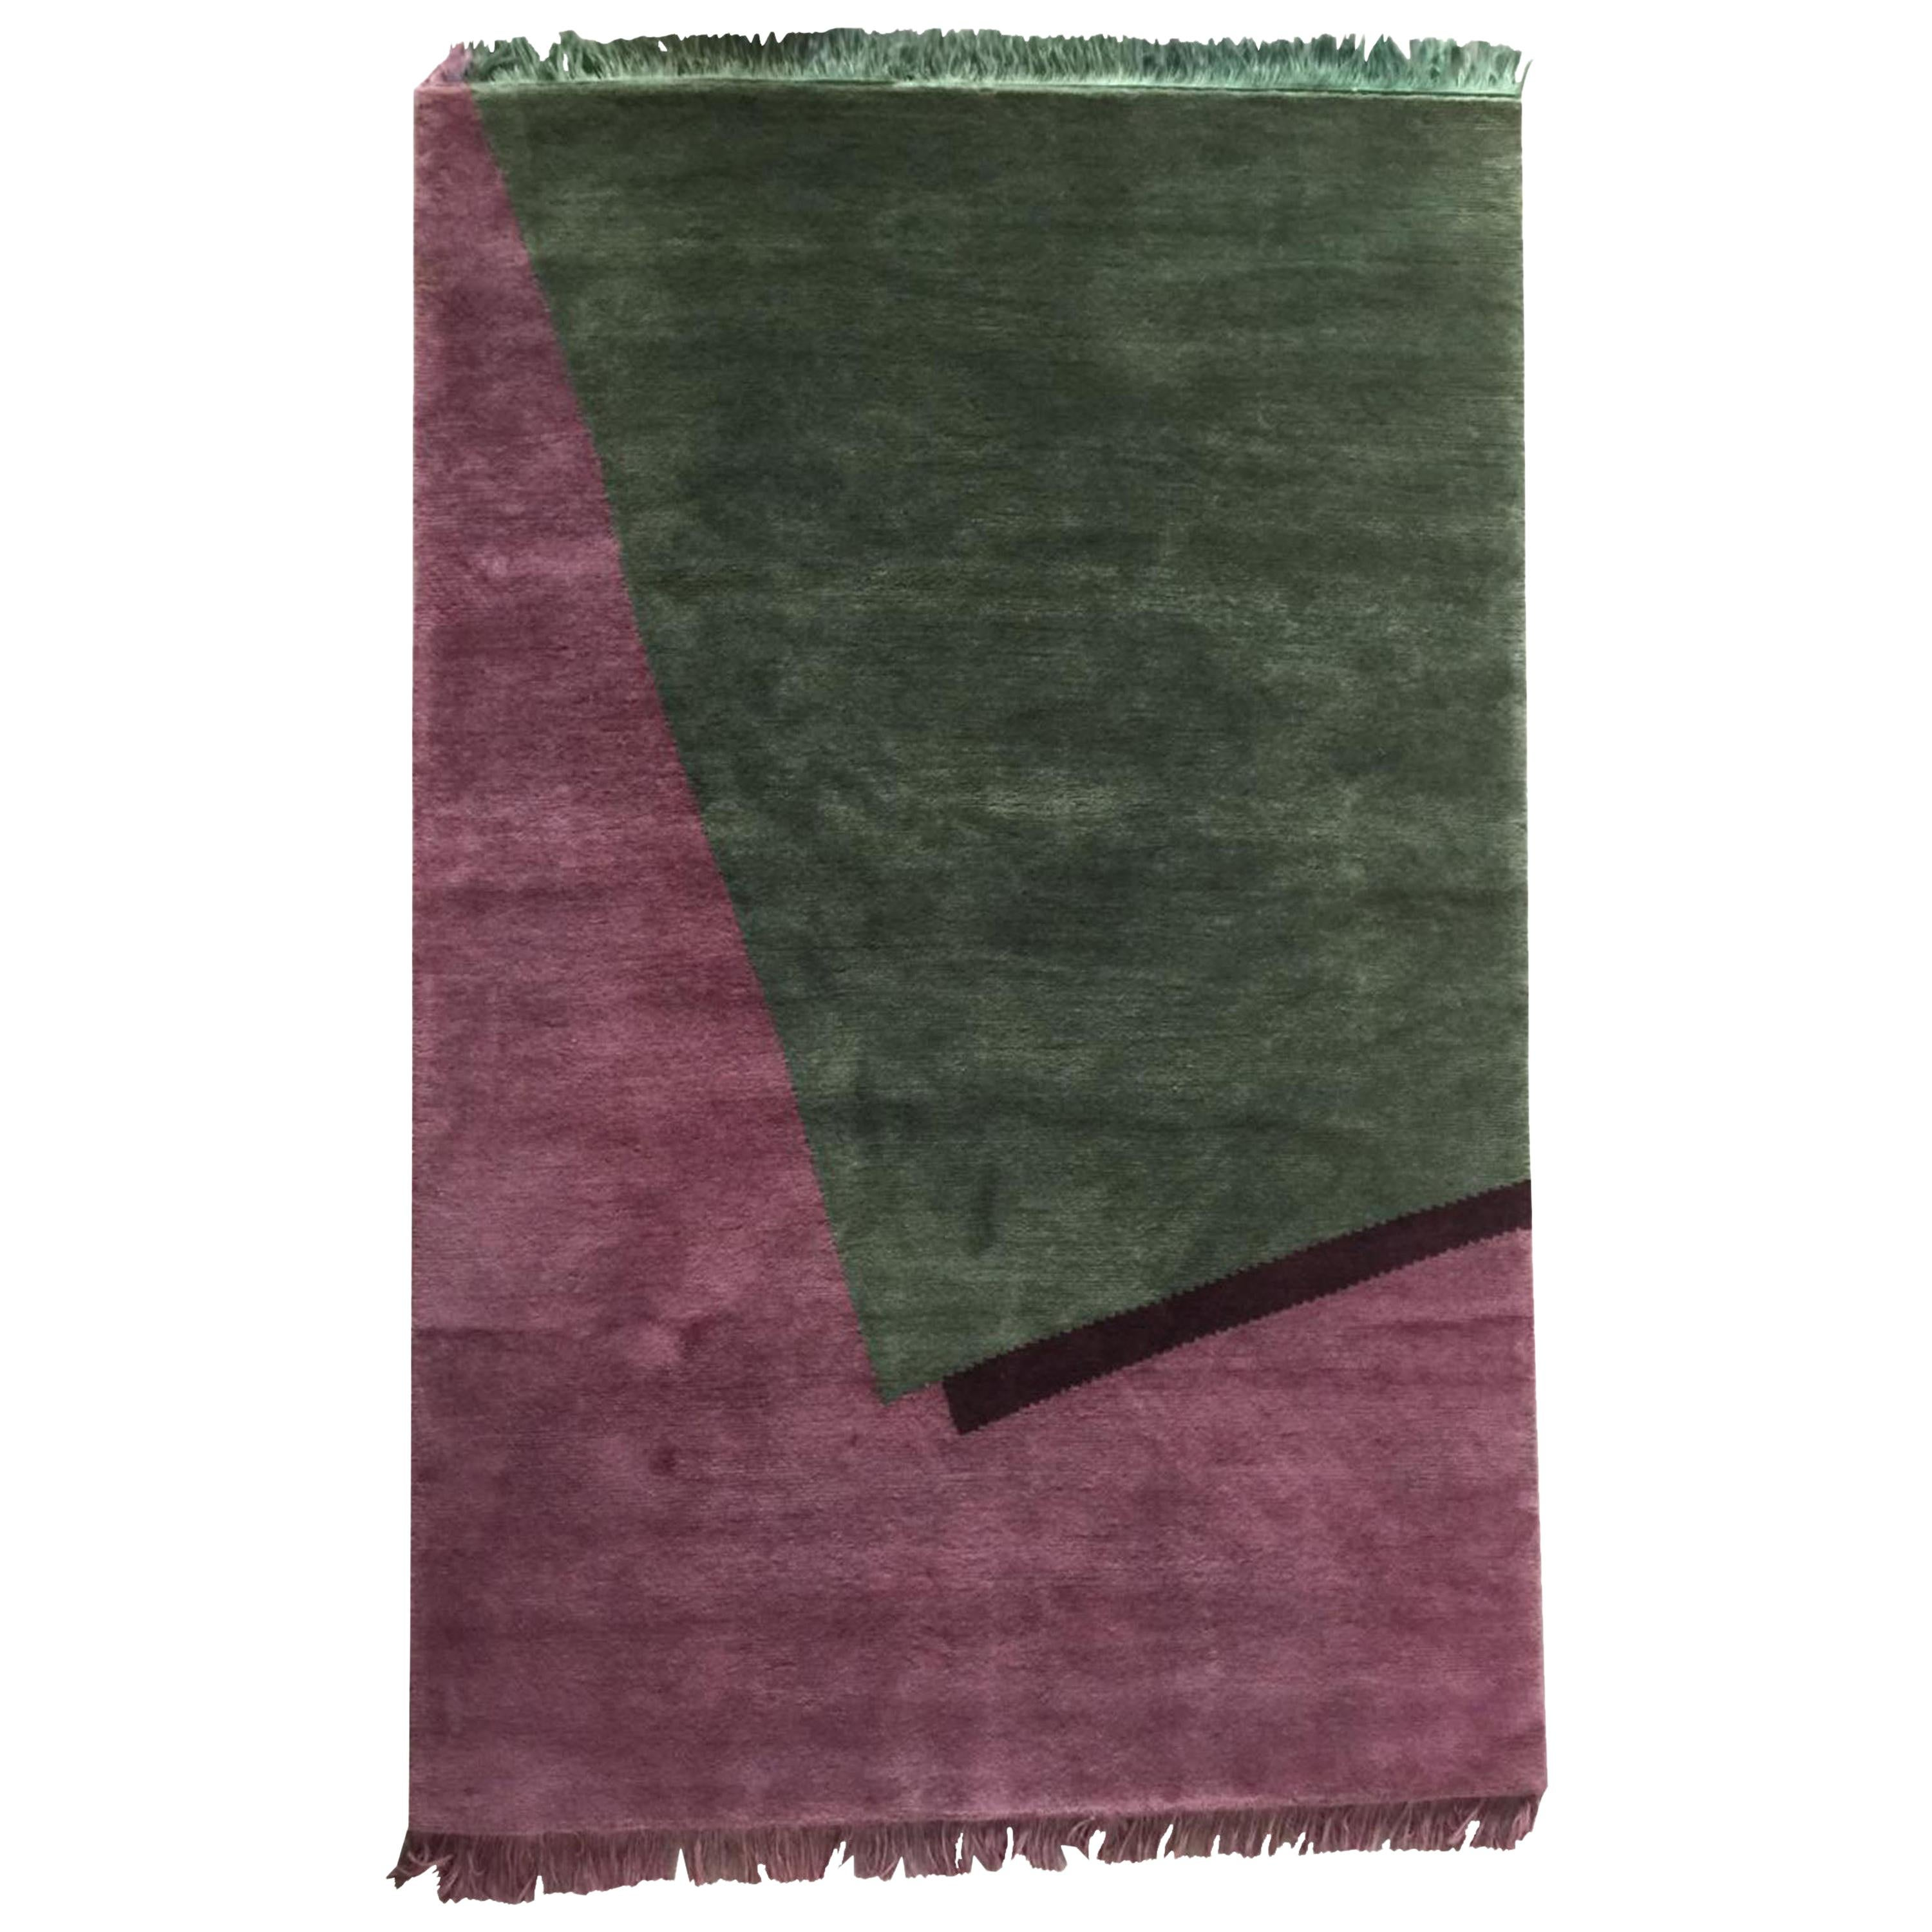 Hand Knotted Wool Rug Burgundy Geometrical by Cecilia Setterdahl for Carpets CC